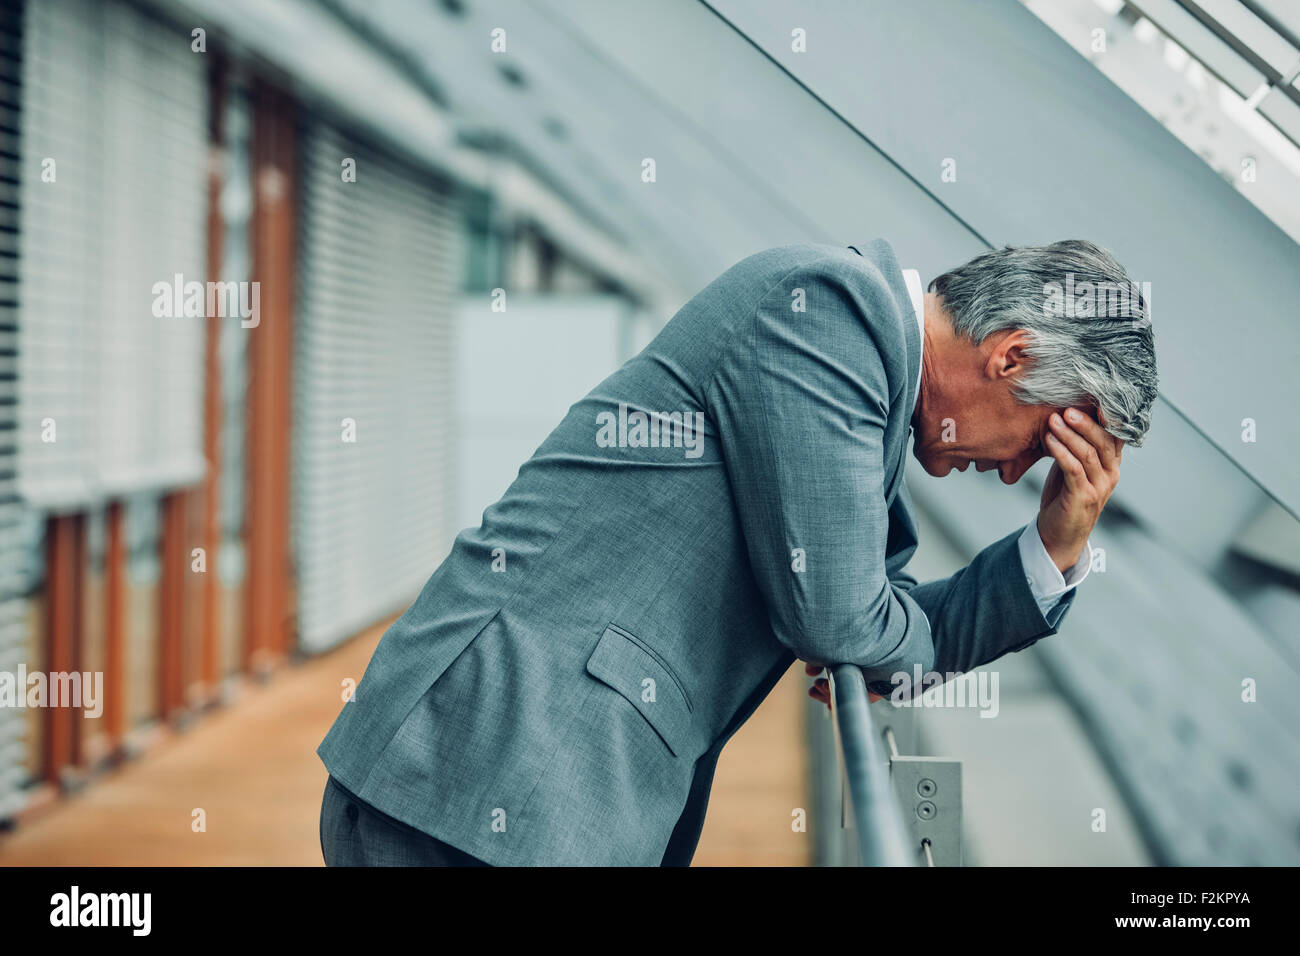 Desperate businessman leaning on railing - Stock Image